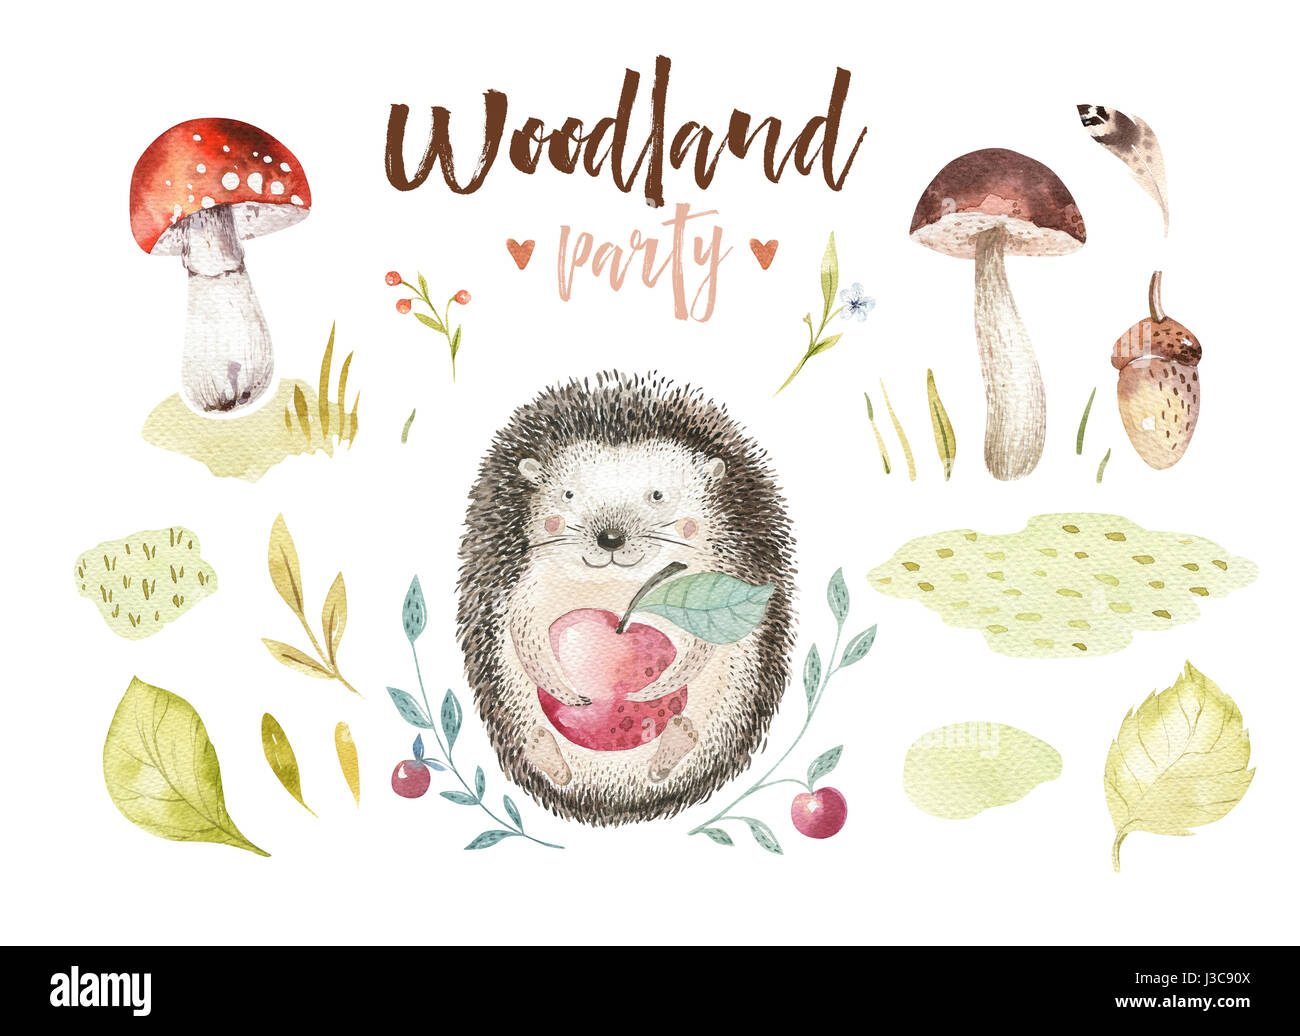 Cute baby animal nursery isolated illustration for children. Watercolor boho forest drawing, watercolour, hedgehog - Stock Image